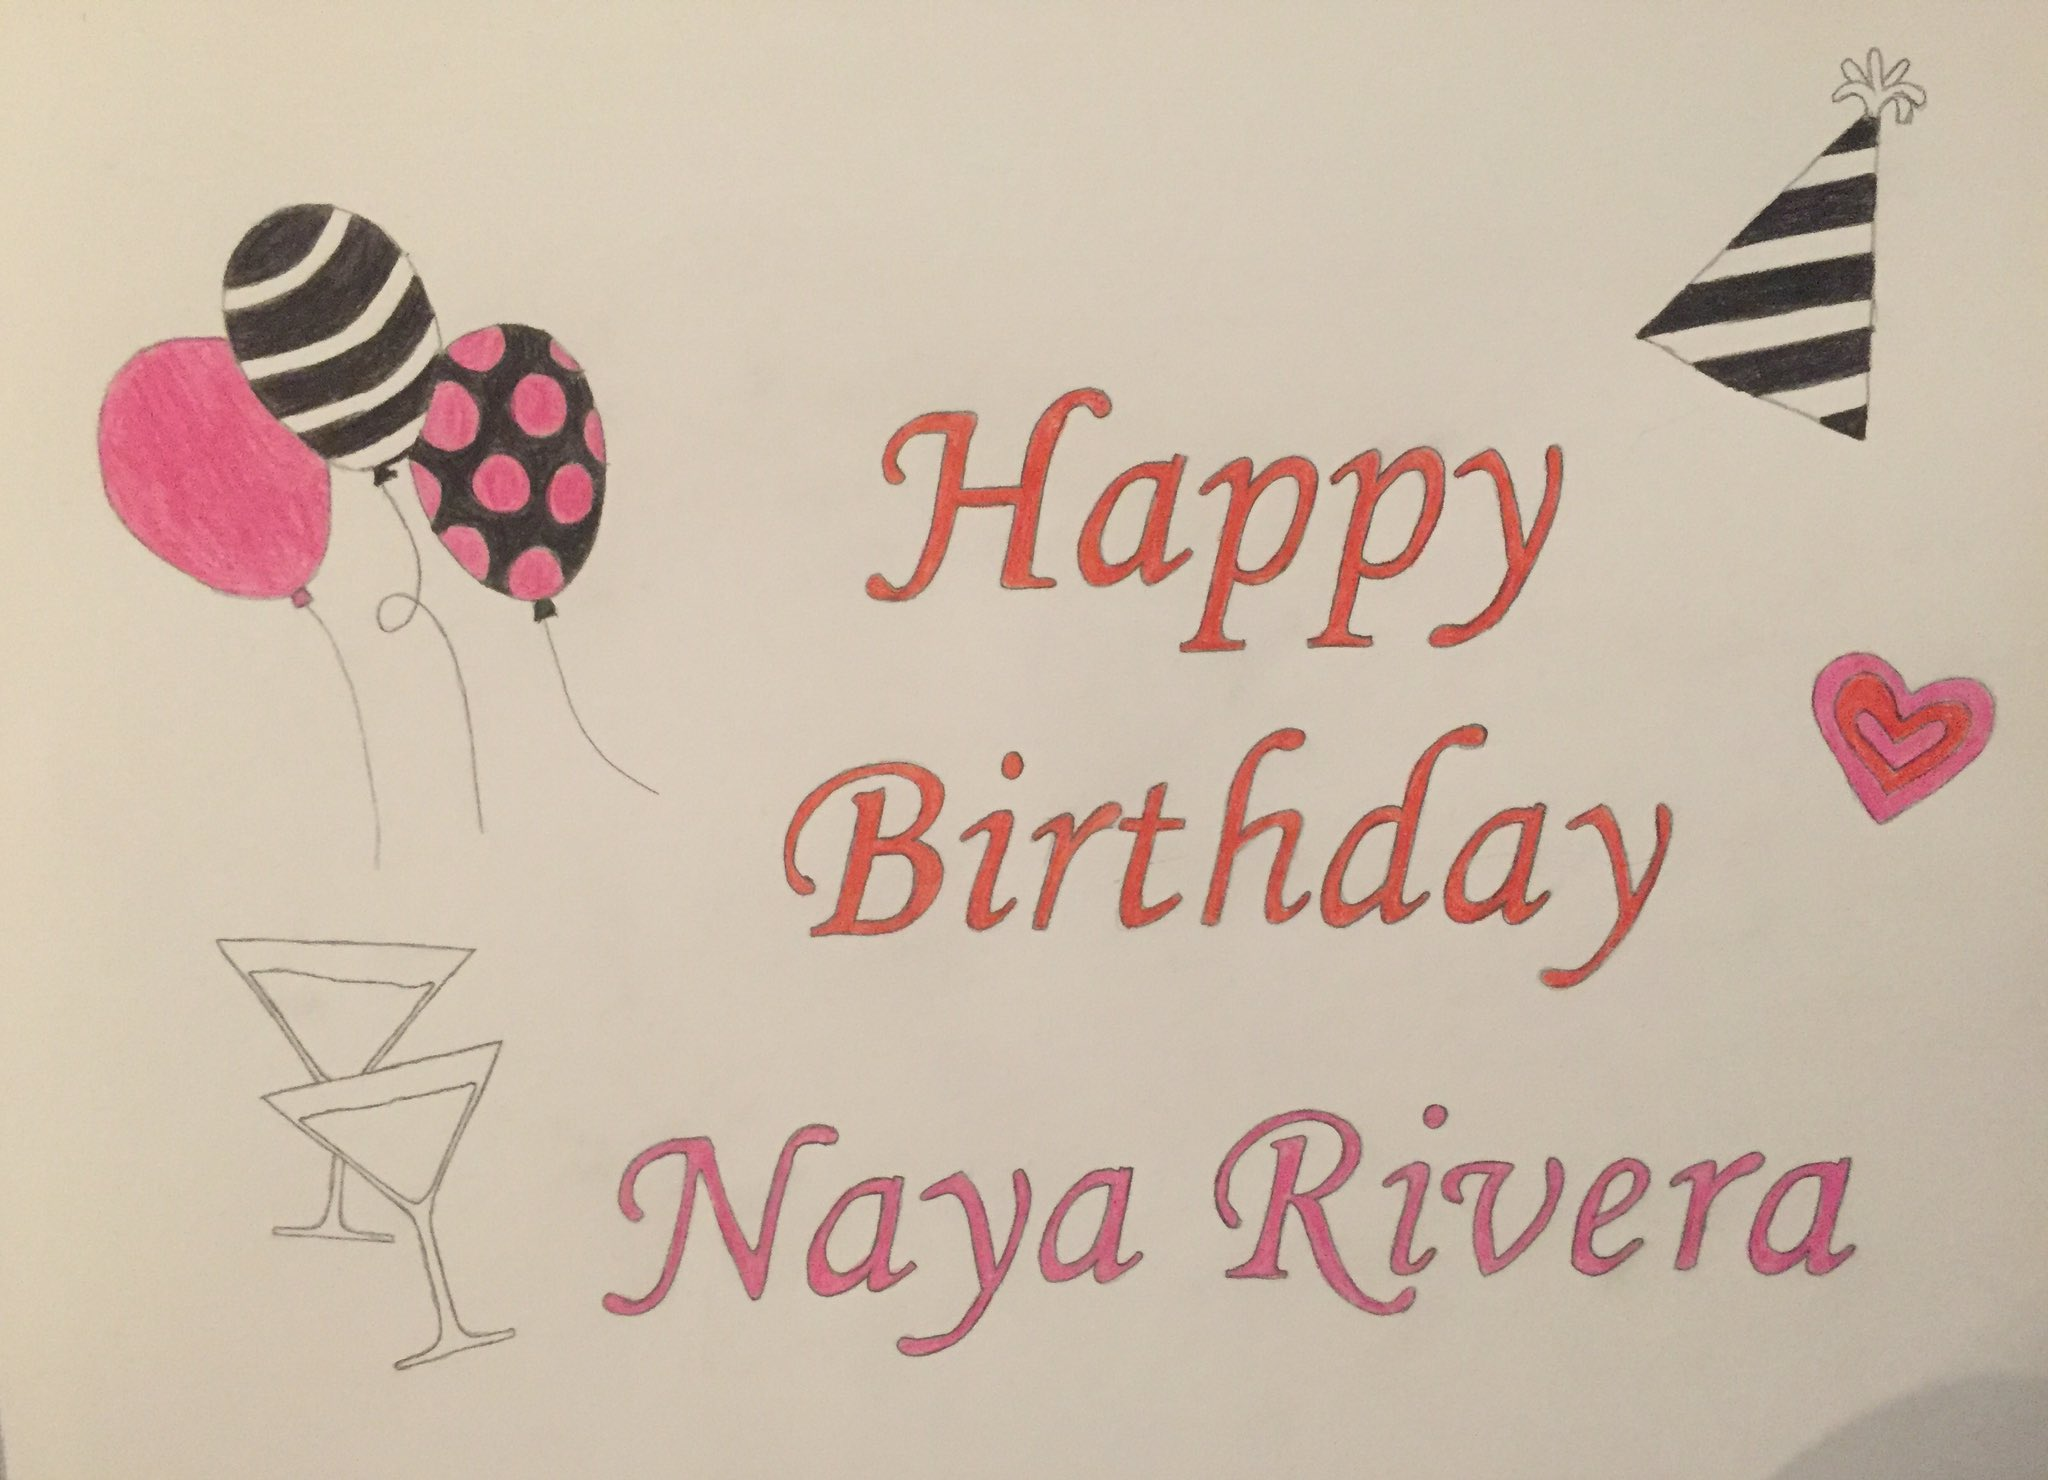 Happy Birthday to the amazing Naya Rivera  I hope you have an amazing day with your loved ones